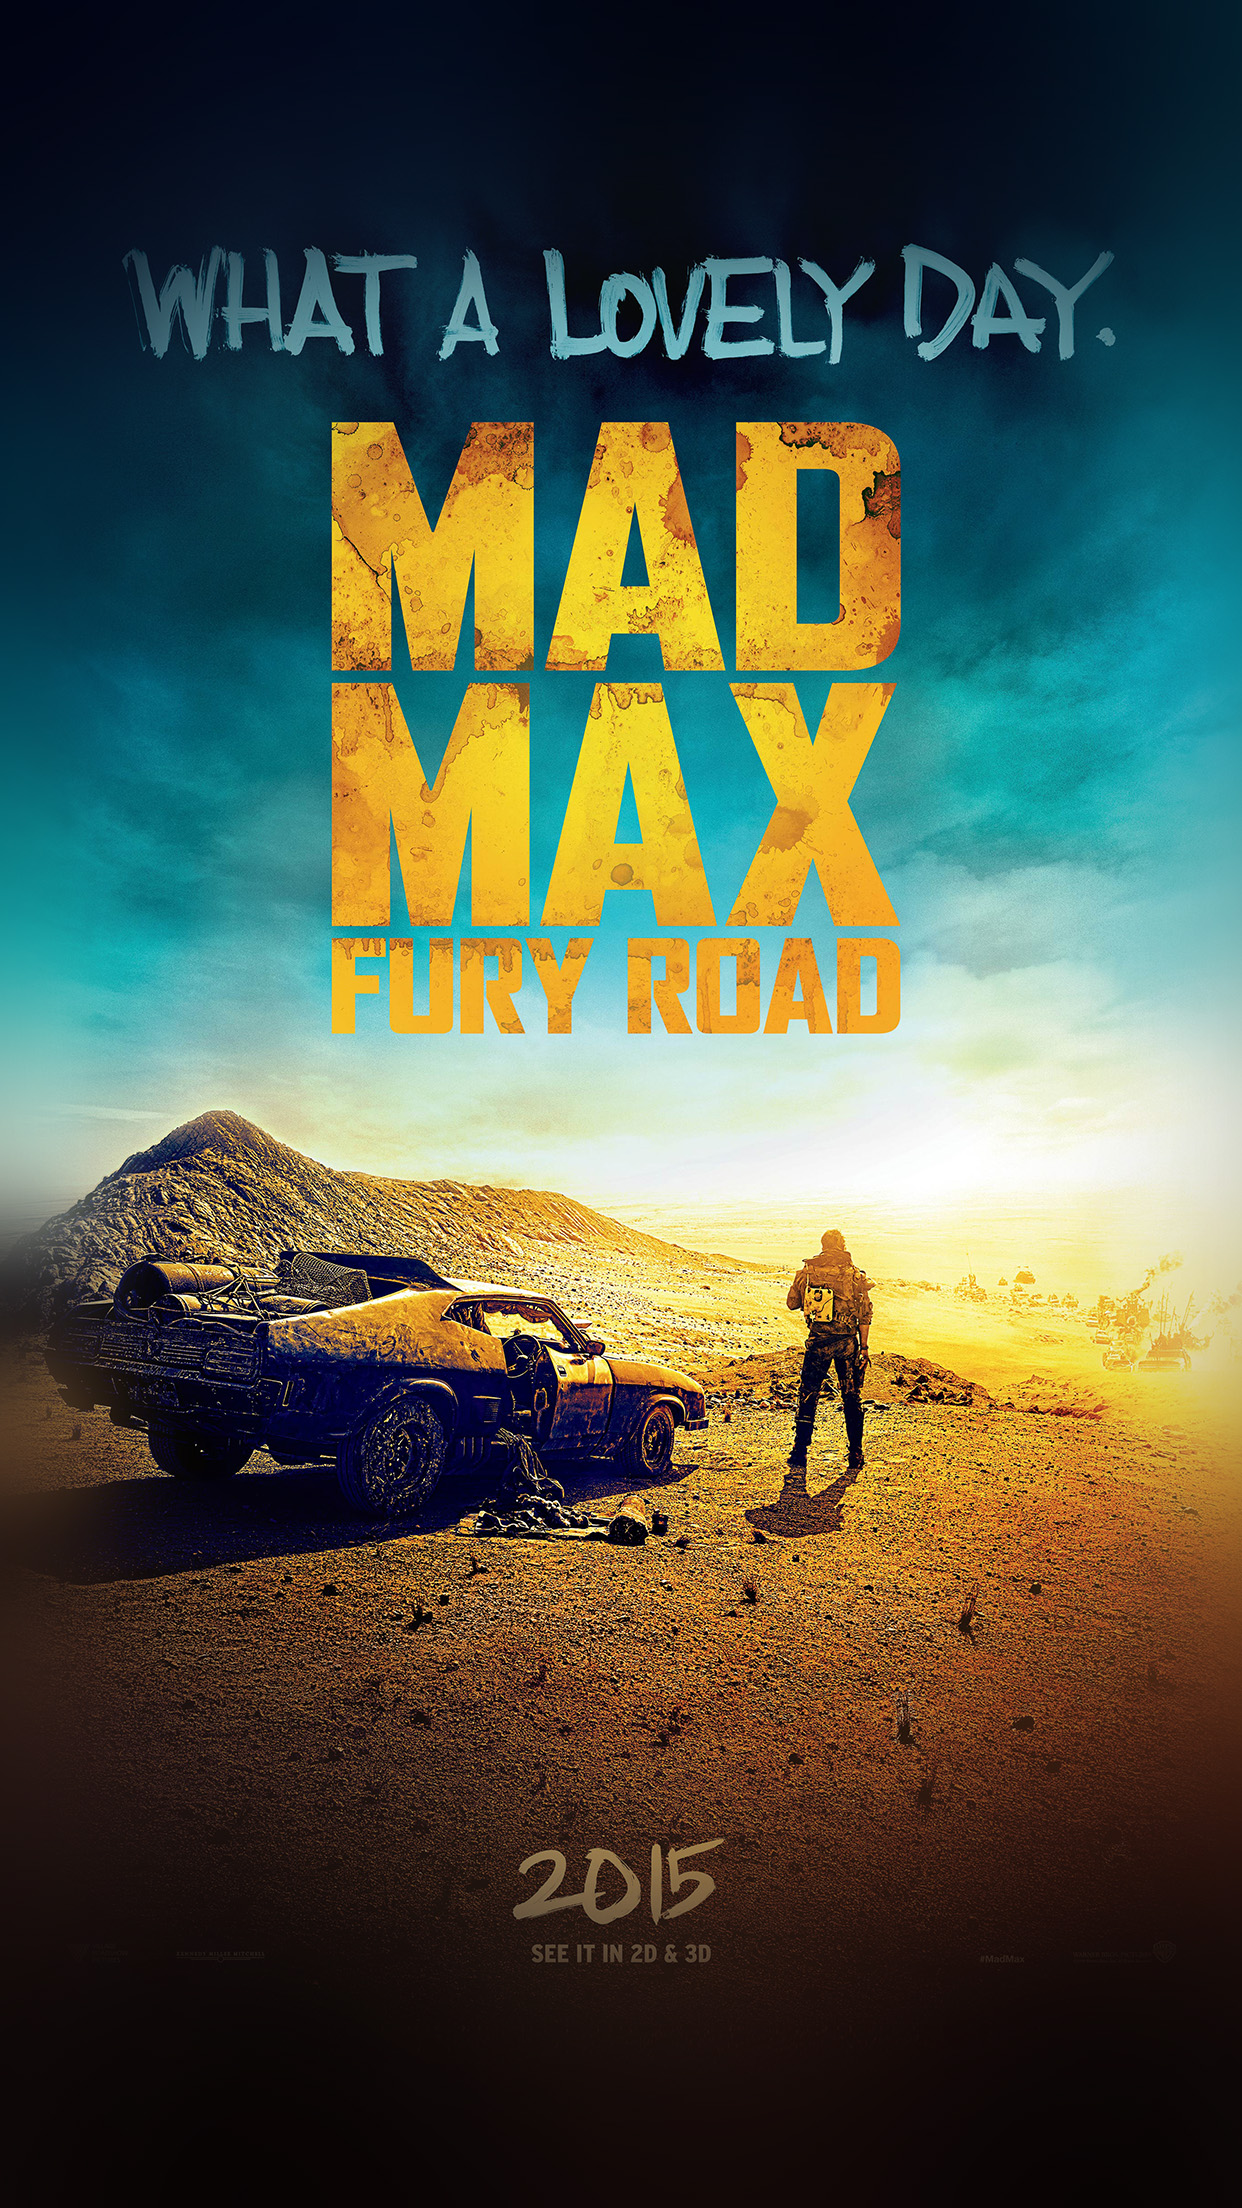 madmax furyroad film poster art lovely day android wallpaper android hd wallpapers